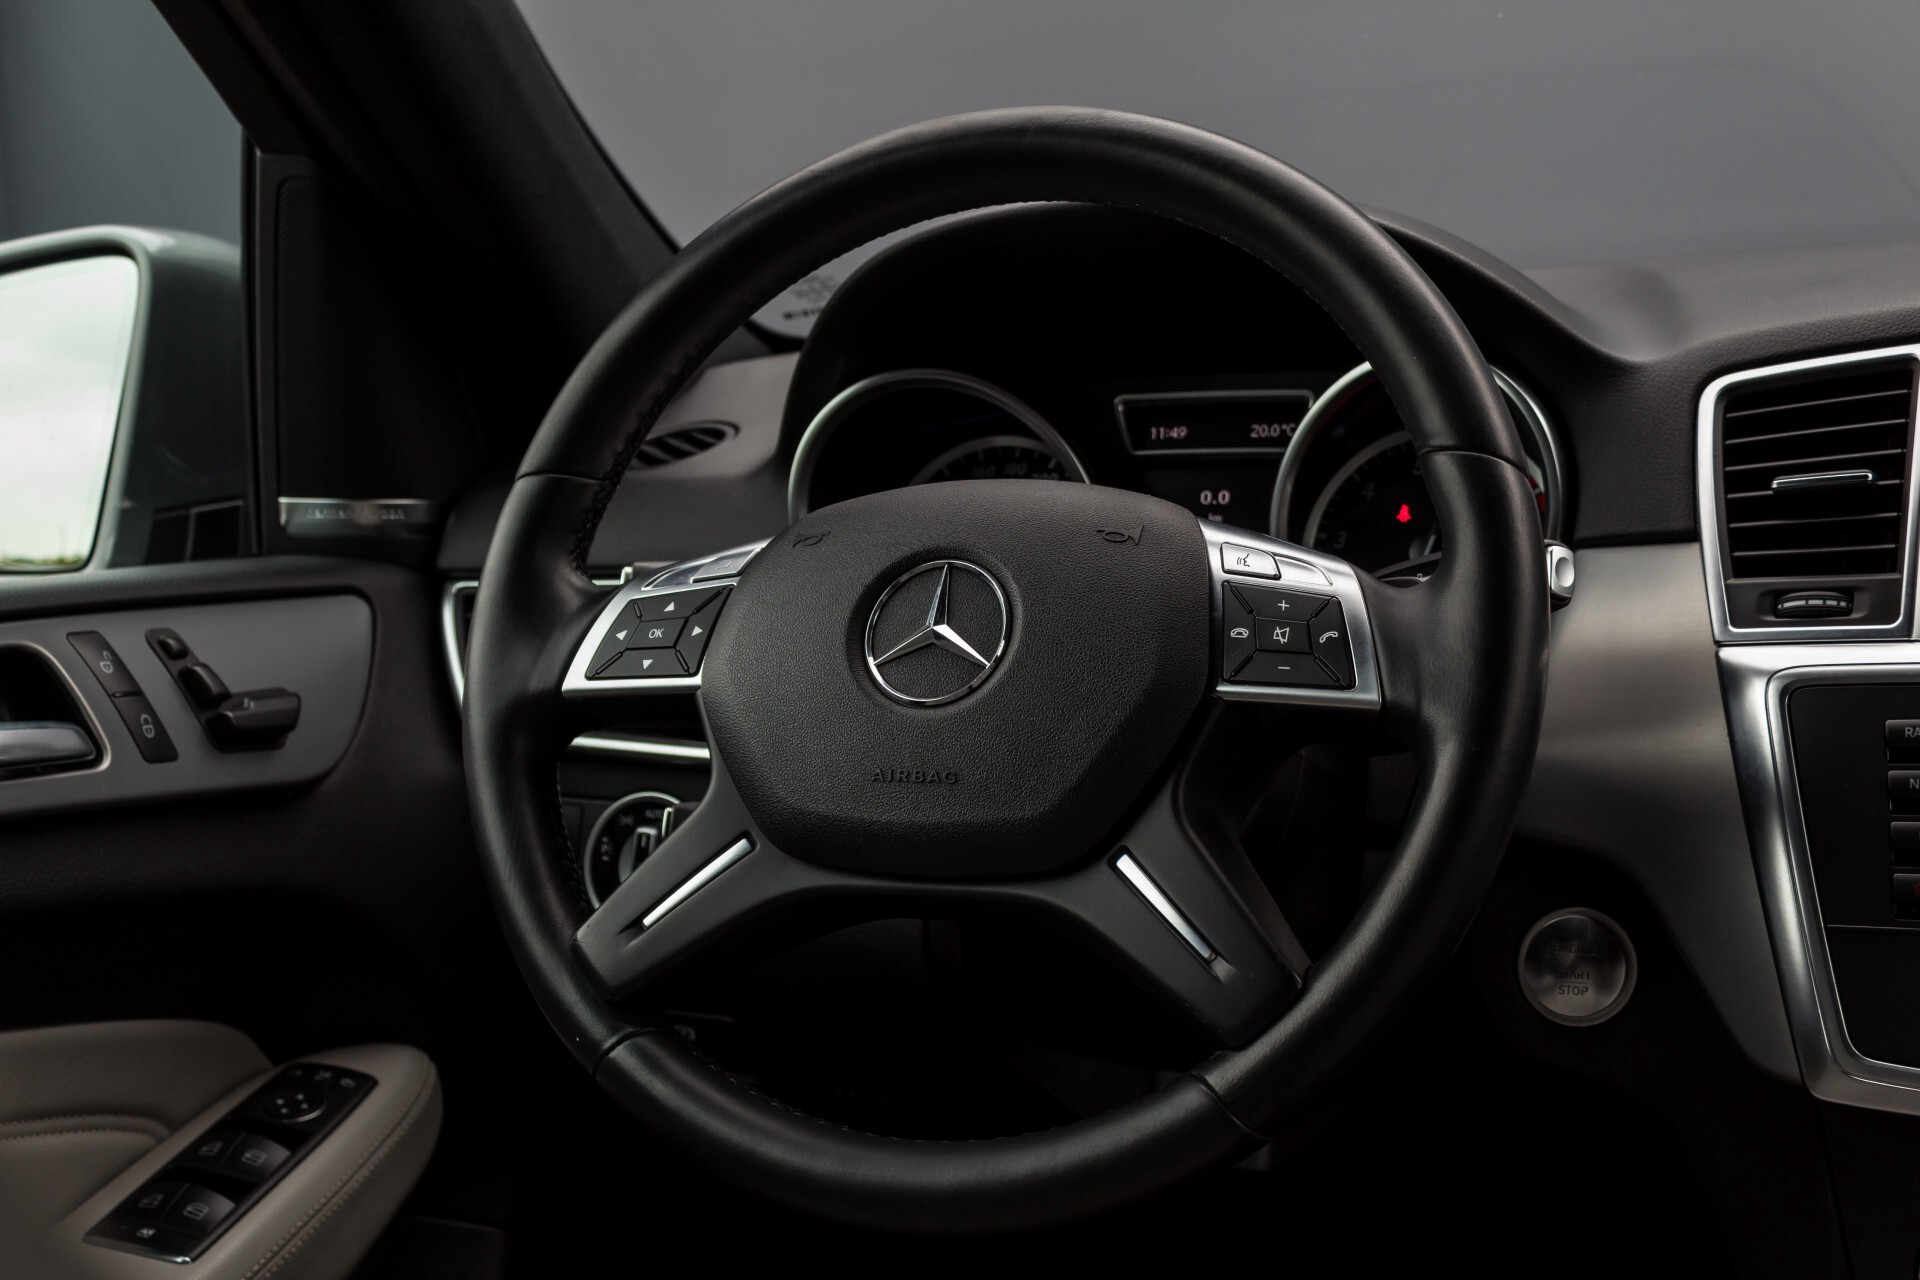 Mercedes-Benz M-Klasse 350 AMG 4-M Panorama/Keyless/Harman-Kardon/Camera/Trekhaak Aut7 Foto 9